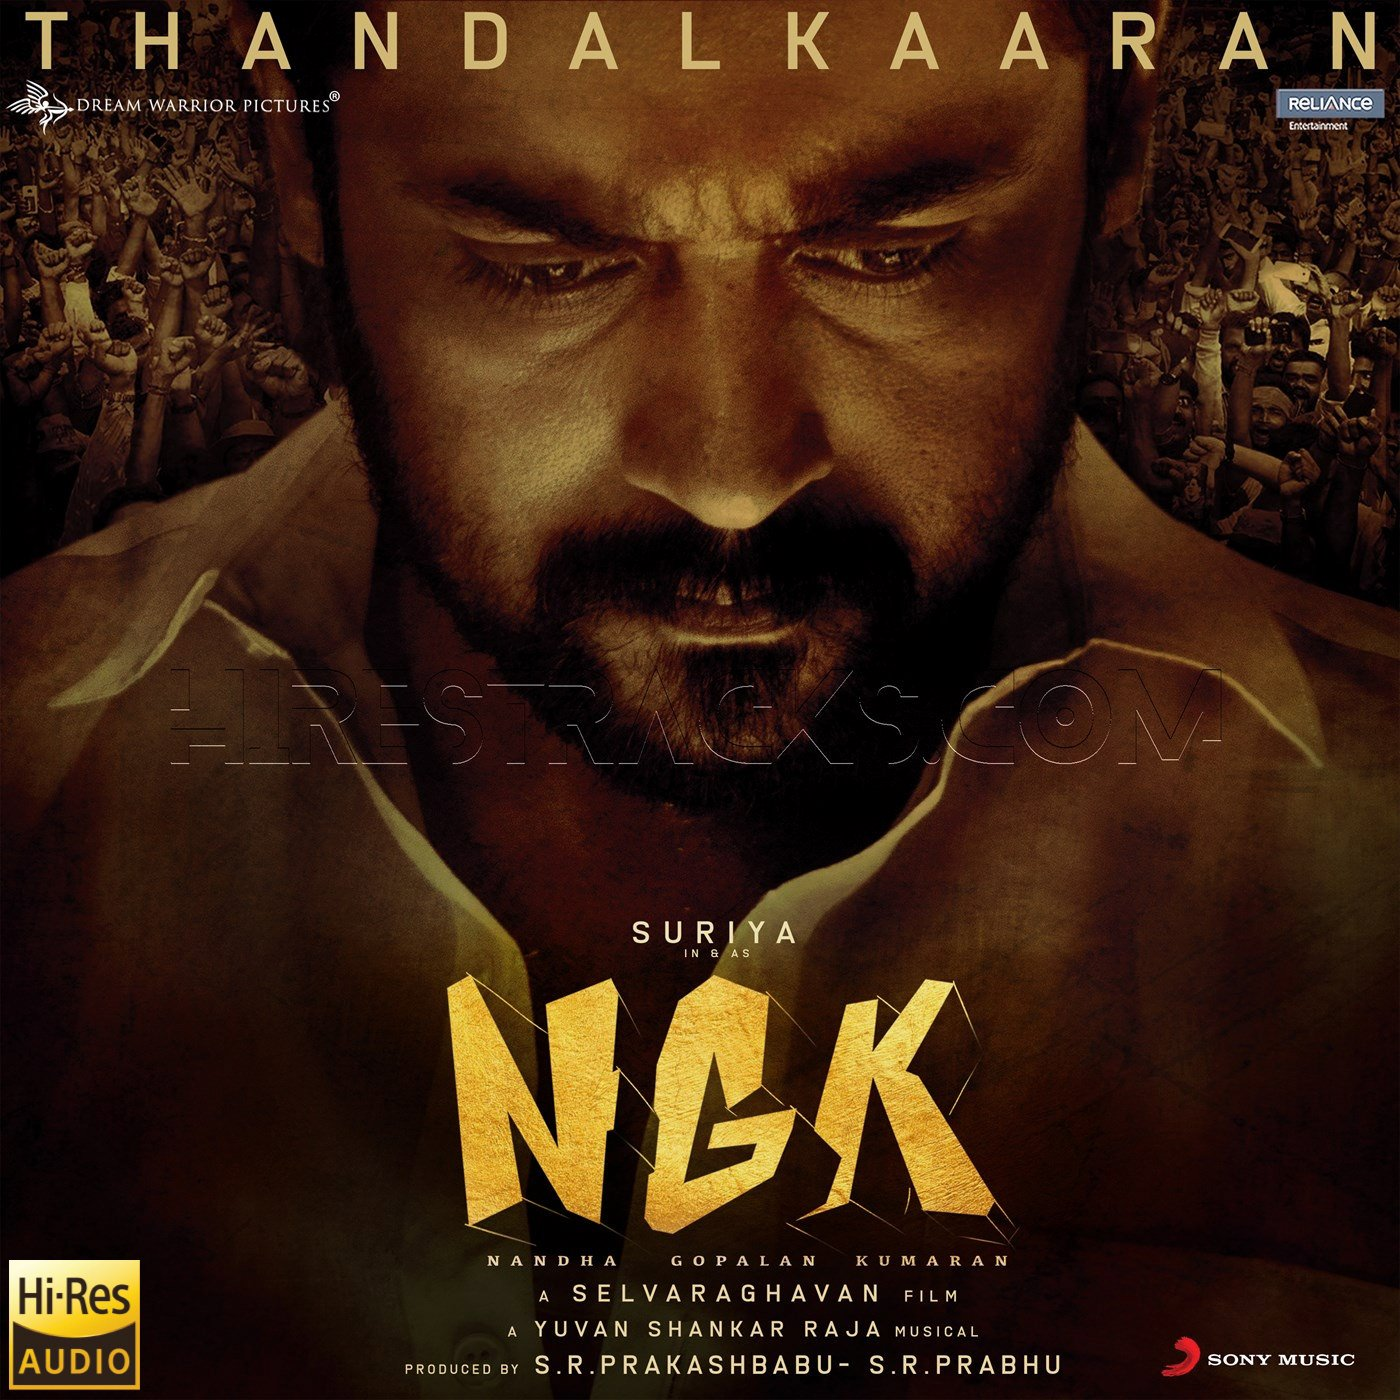 Thandalkaaran (From NGK) – Single – (2019) (24 BIT-48 KHZ)